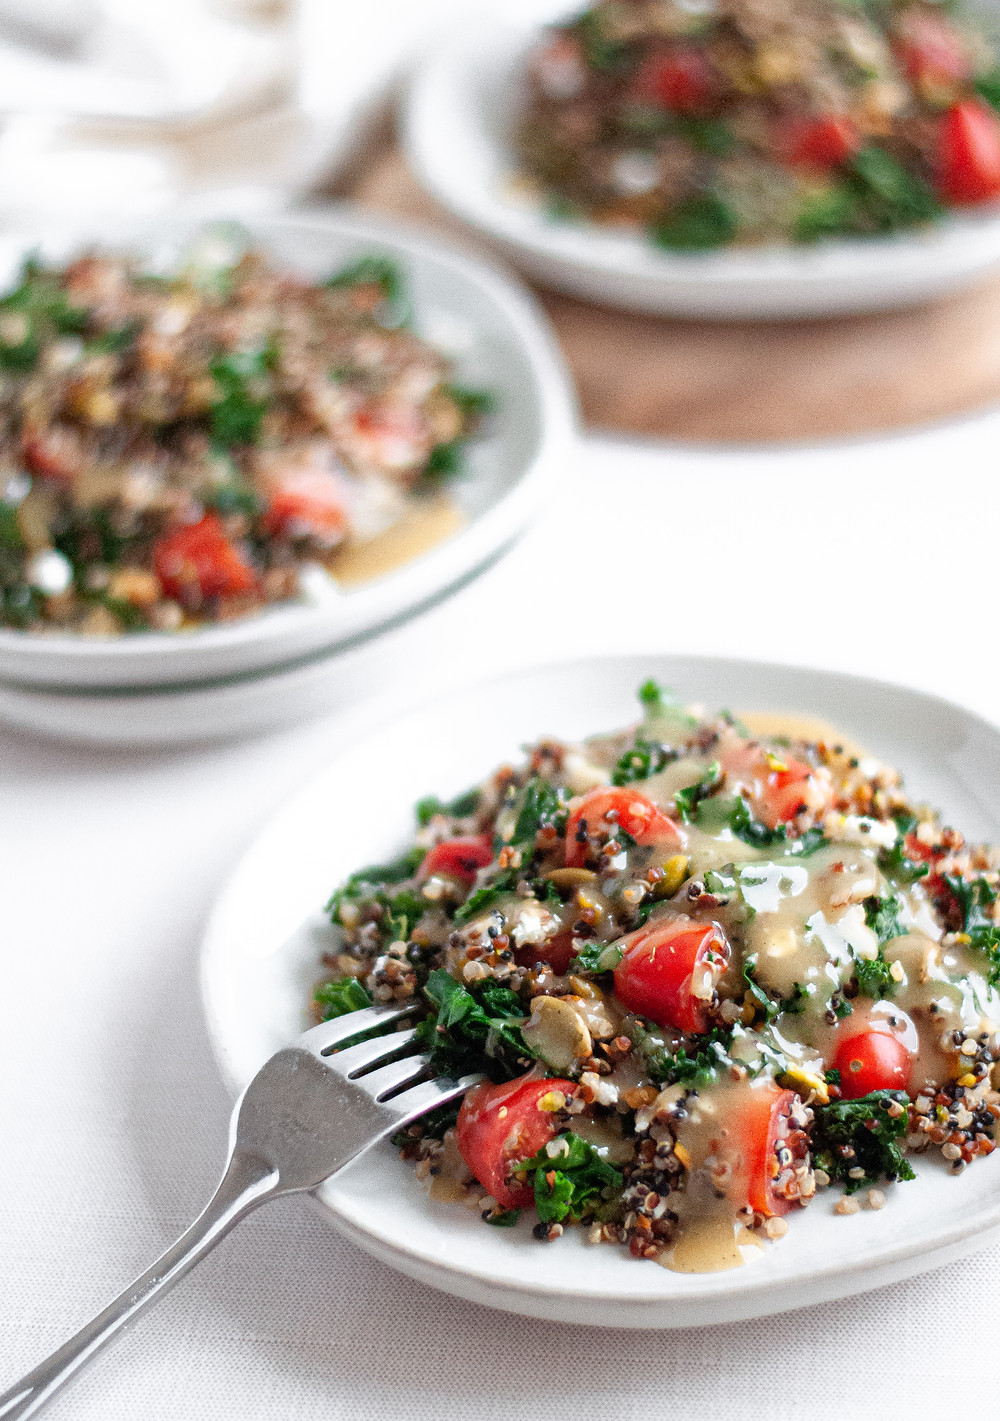 Three plates of kale and quinoa salad, topped with homemade maple tahini dressing